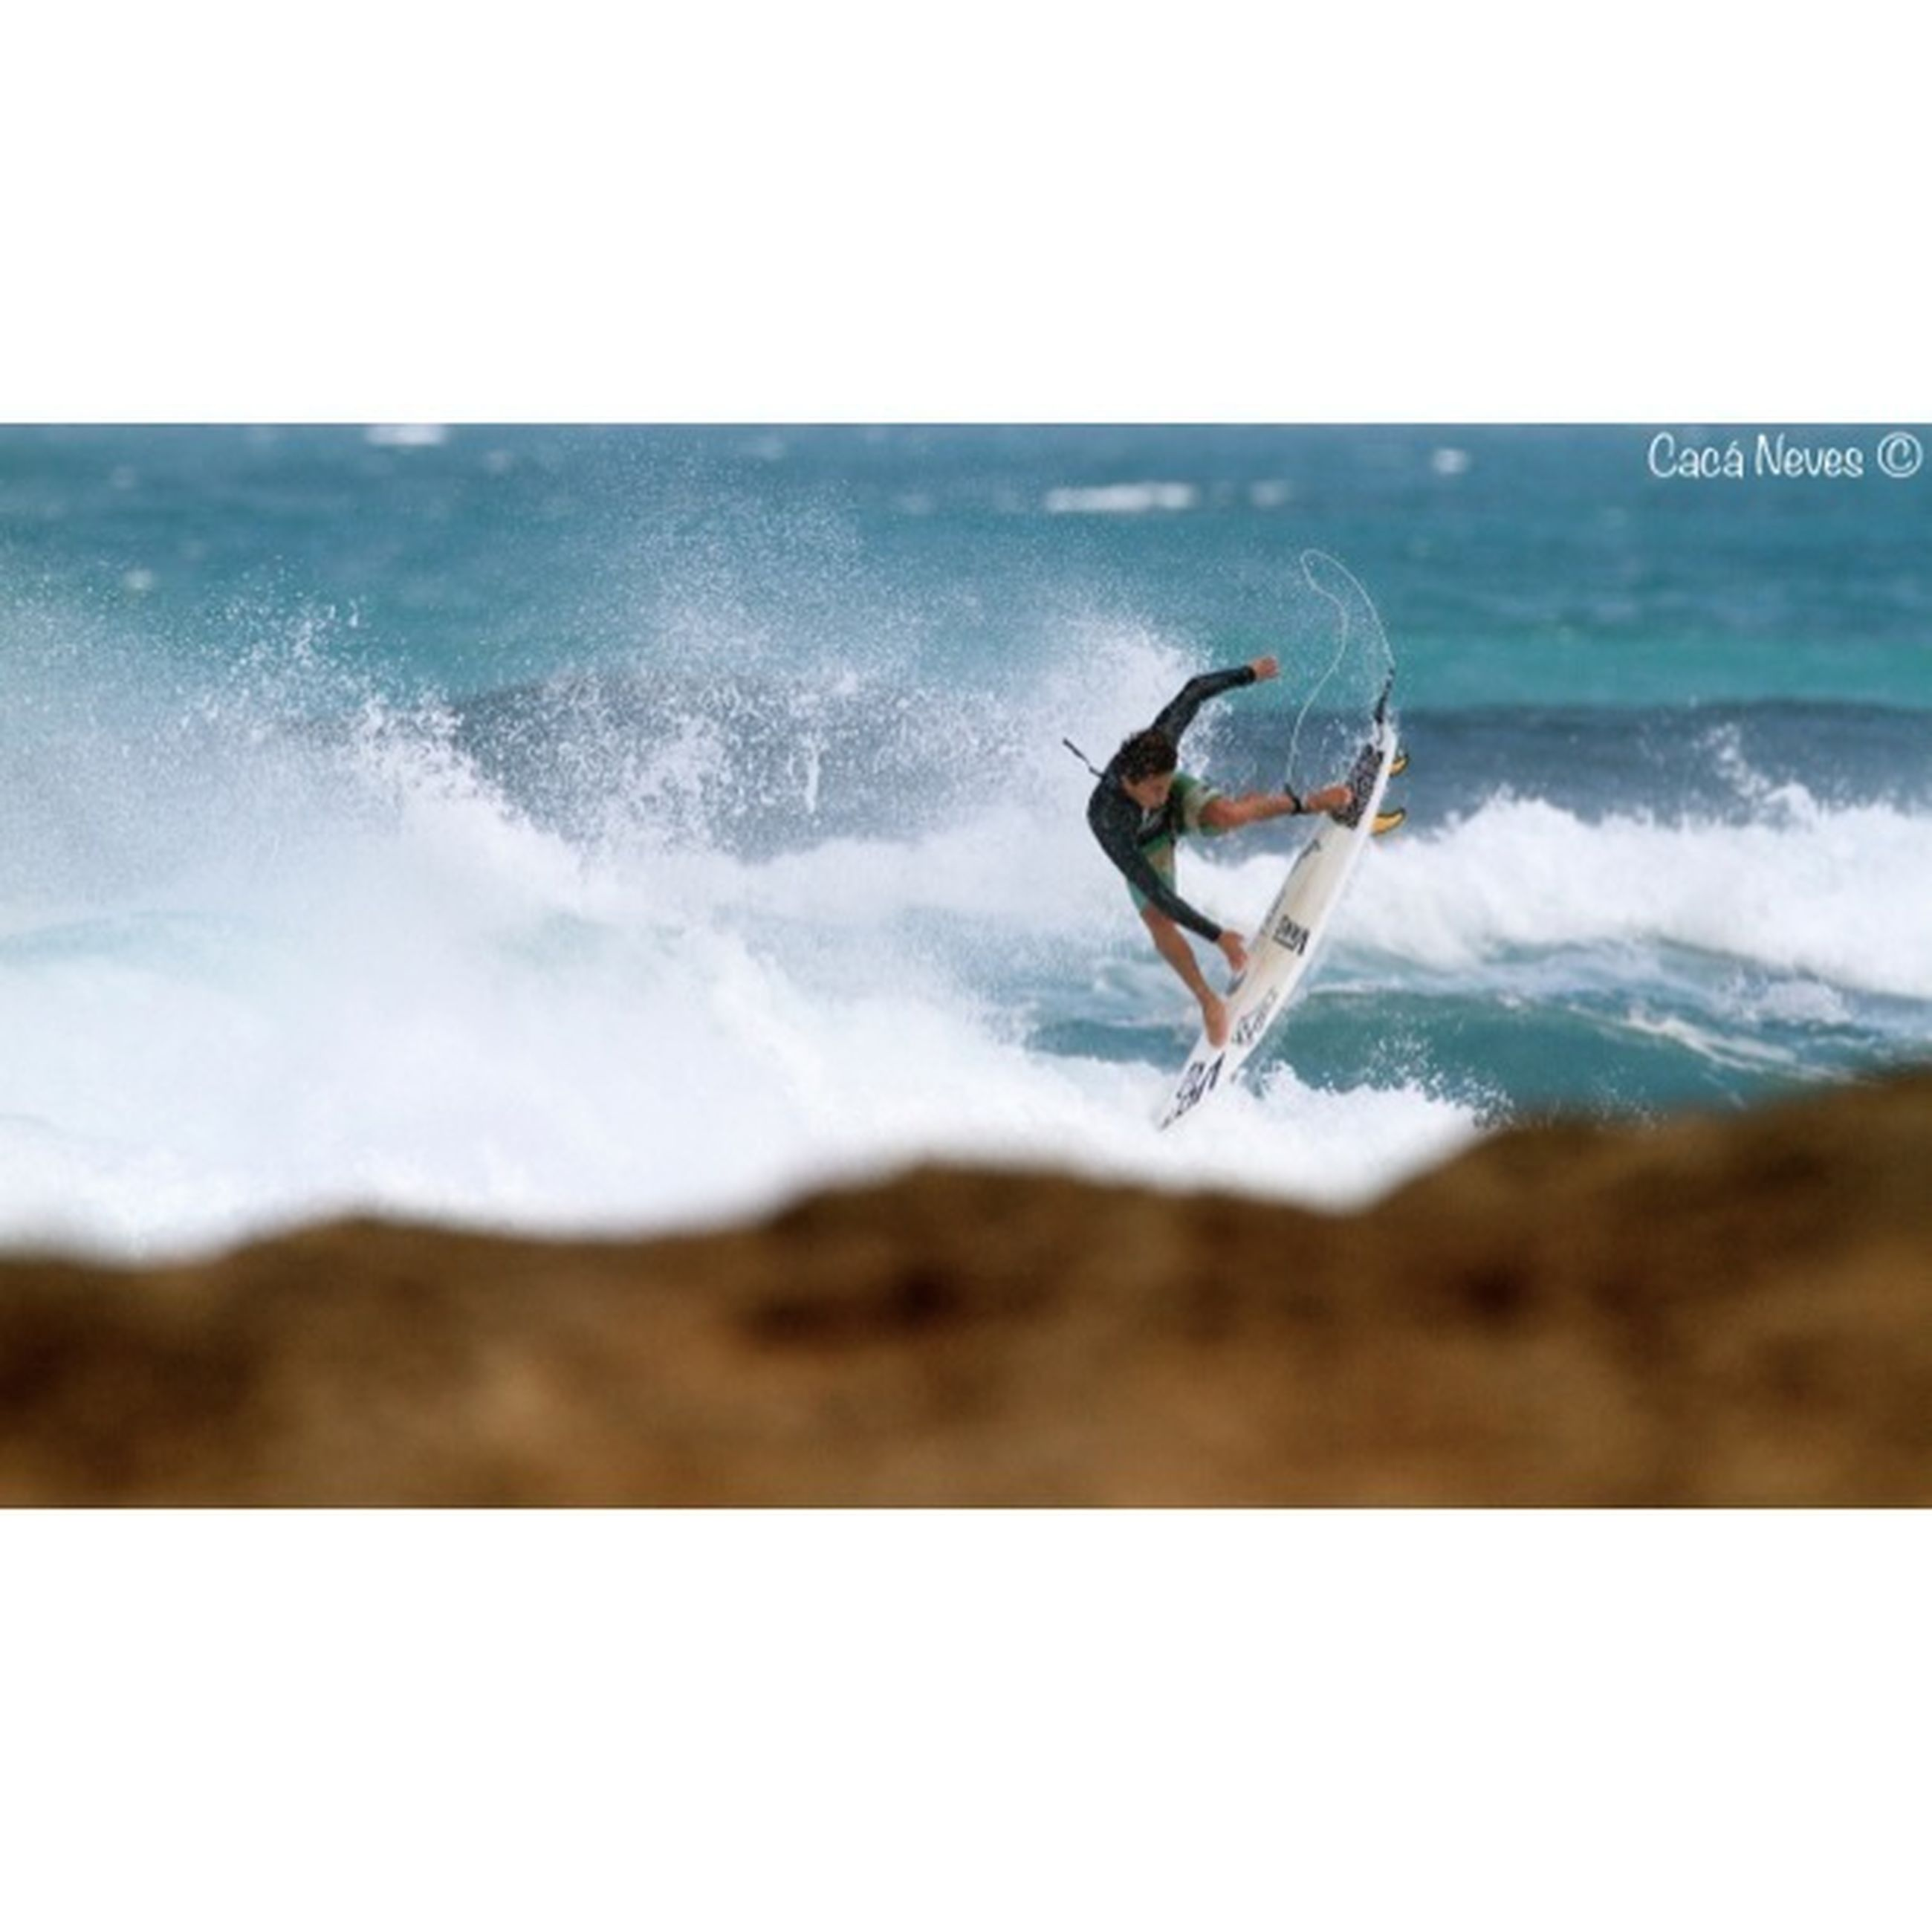 sea, water, animals in the wild, animal themes, wildlife, one animal, wave, horizon over water, bird, nature, seagull, motion, splashing, surf, beauty in nature, beach, waterfront, auto post production filter, full length, clear sky